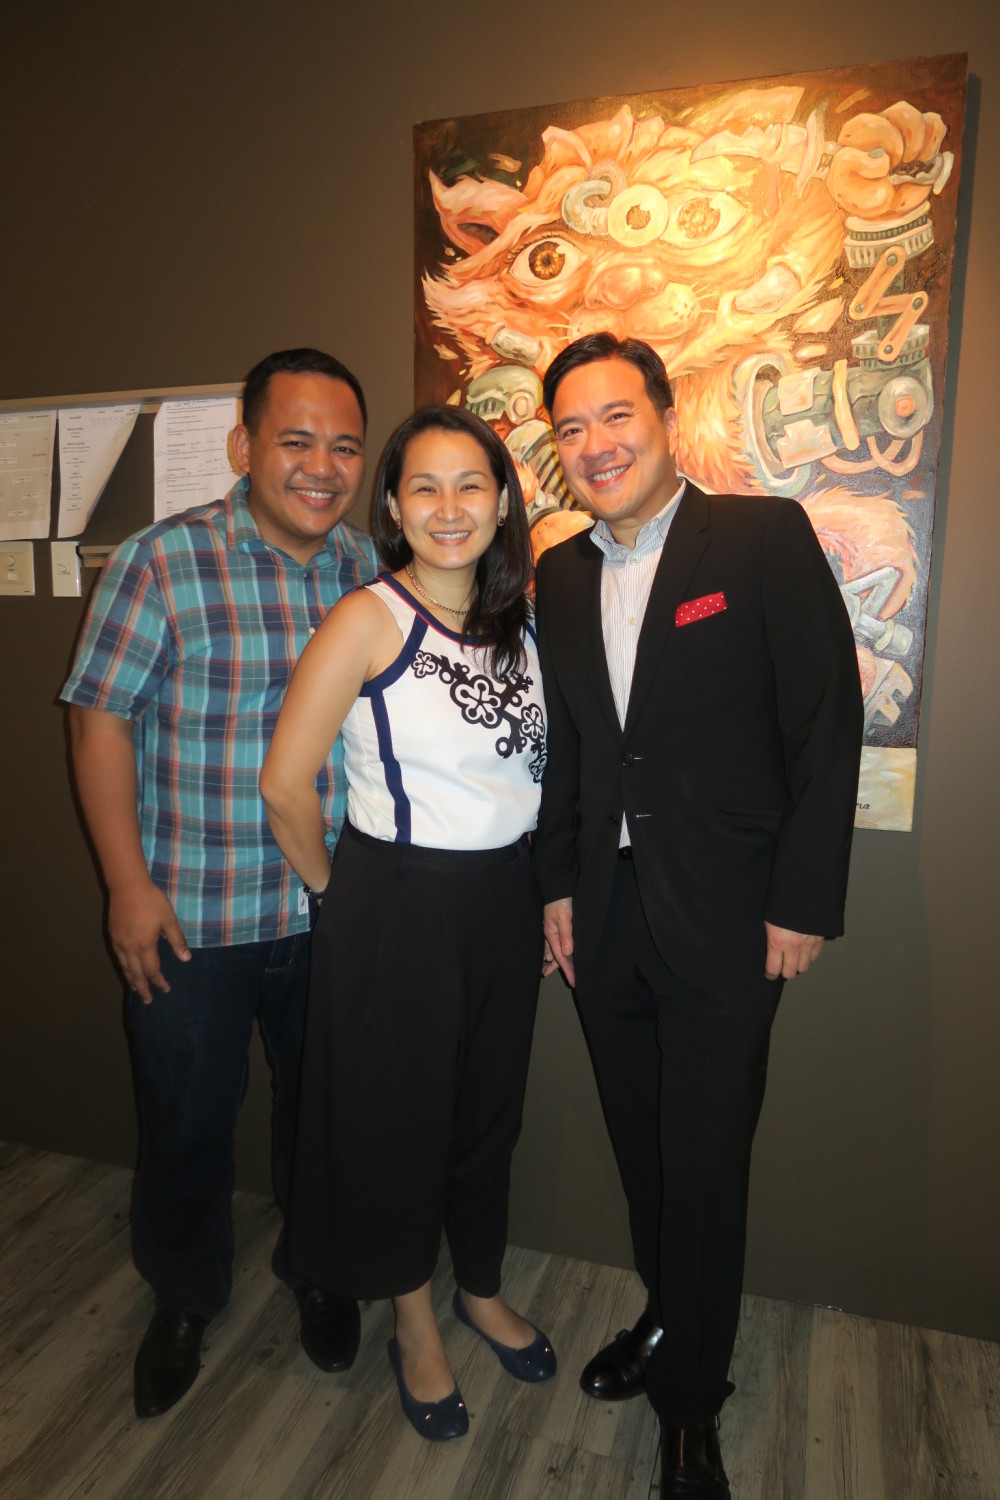 Our Awesome Planet's Anton and Rachelle Diaz with Marula Oil's Larry Tolosa